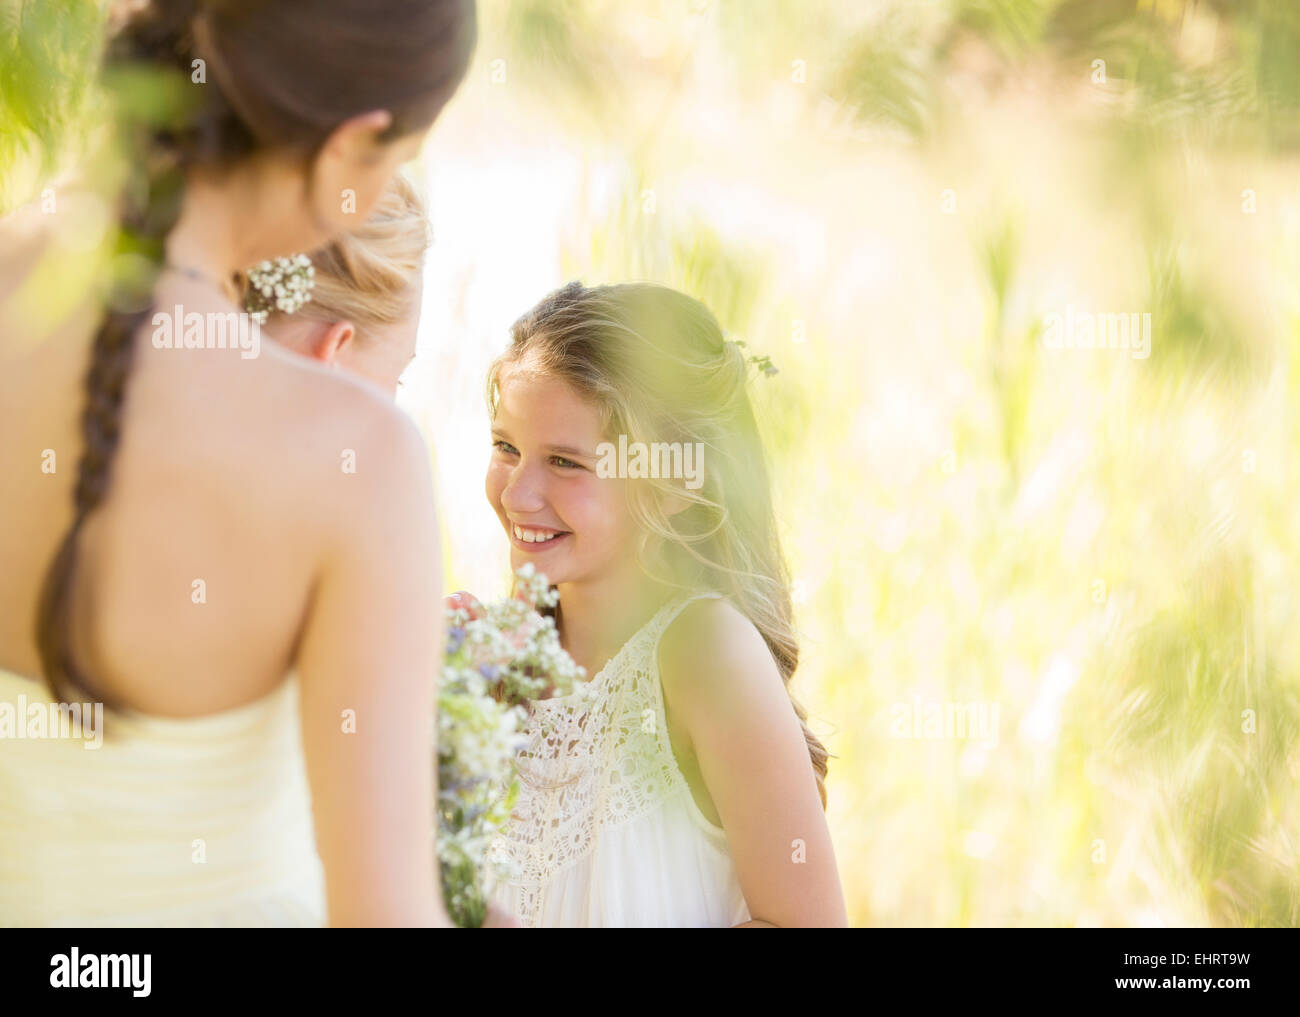 Bridesmaid With Bouquet Of Flowers During Wedding